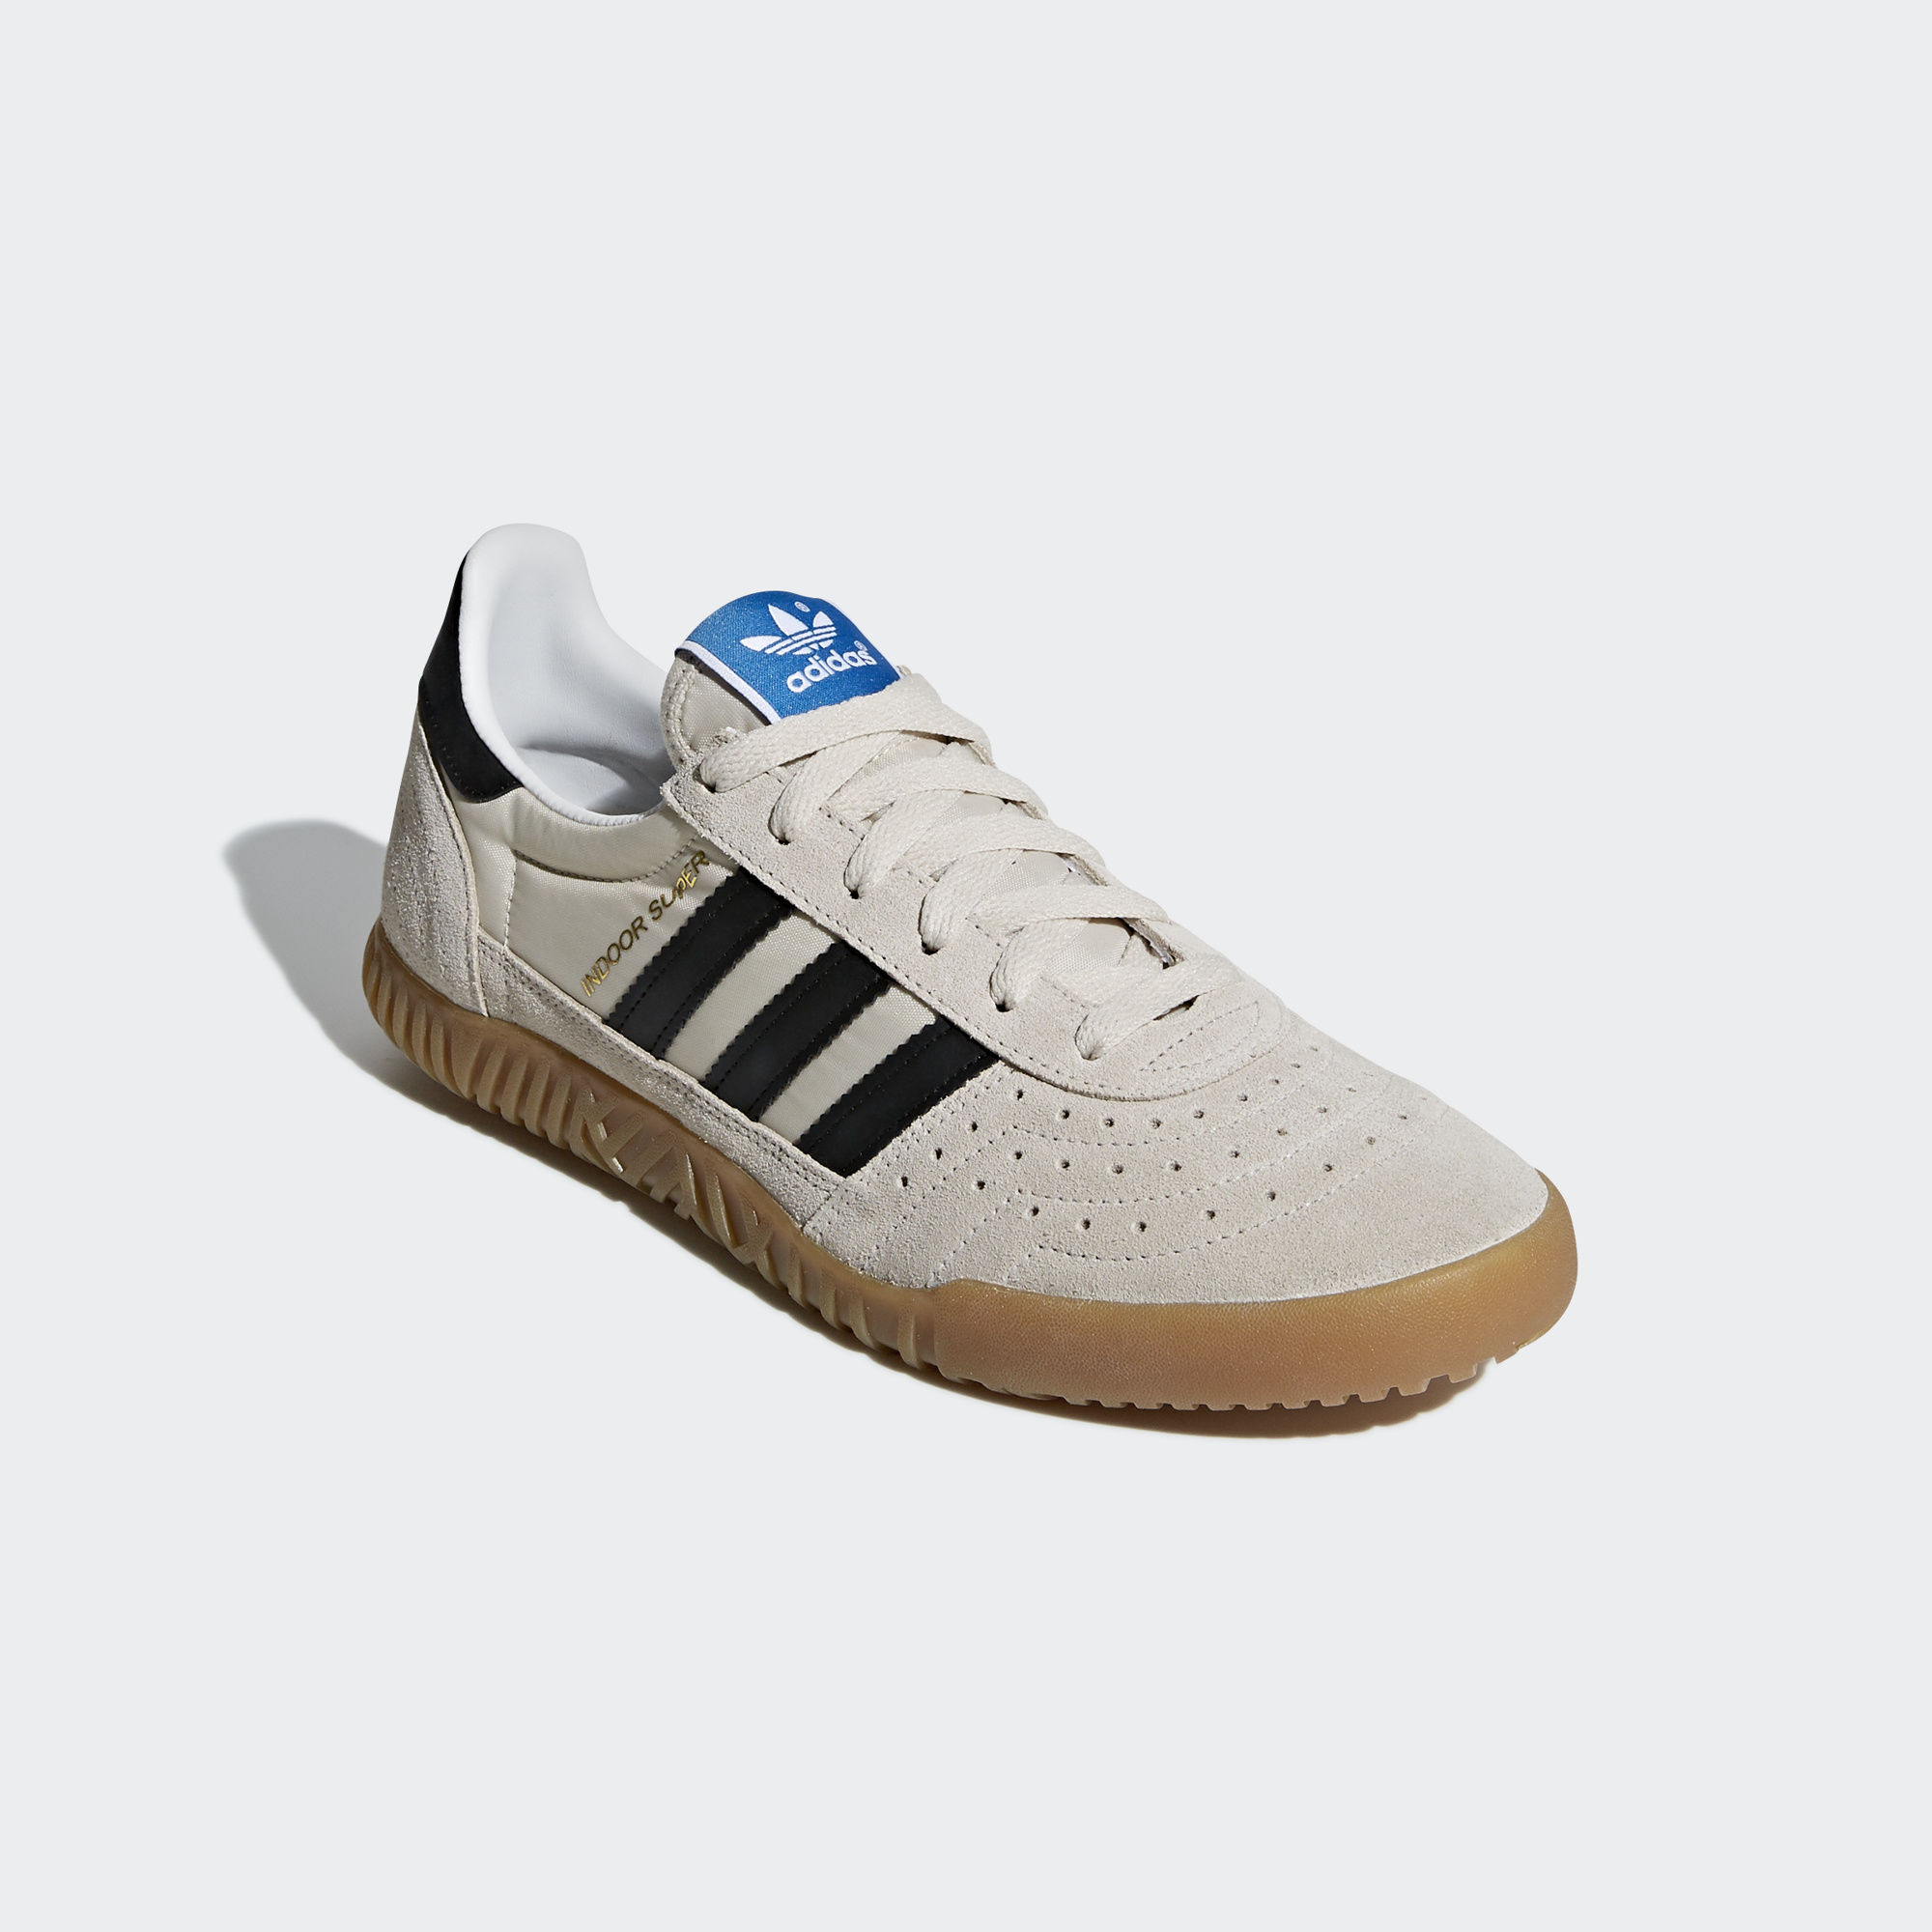 Adidas Indoor Super B41521